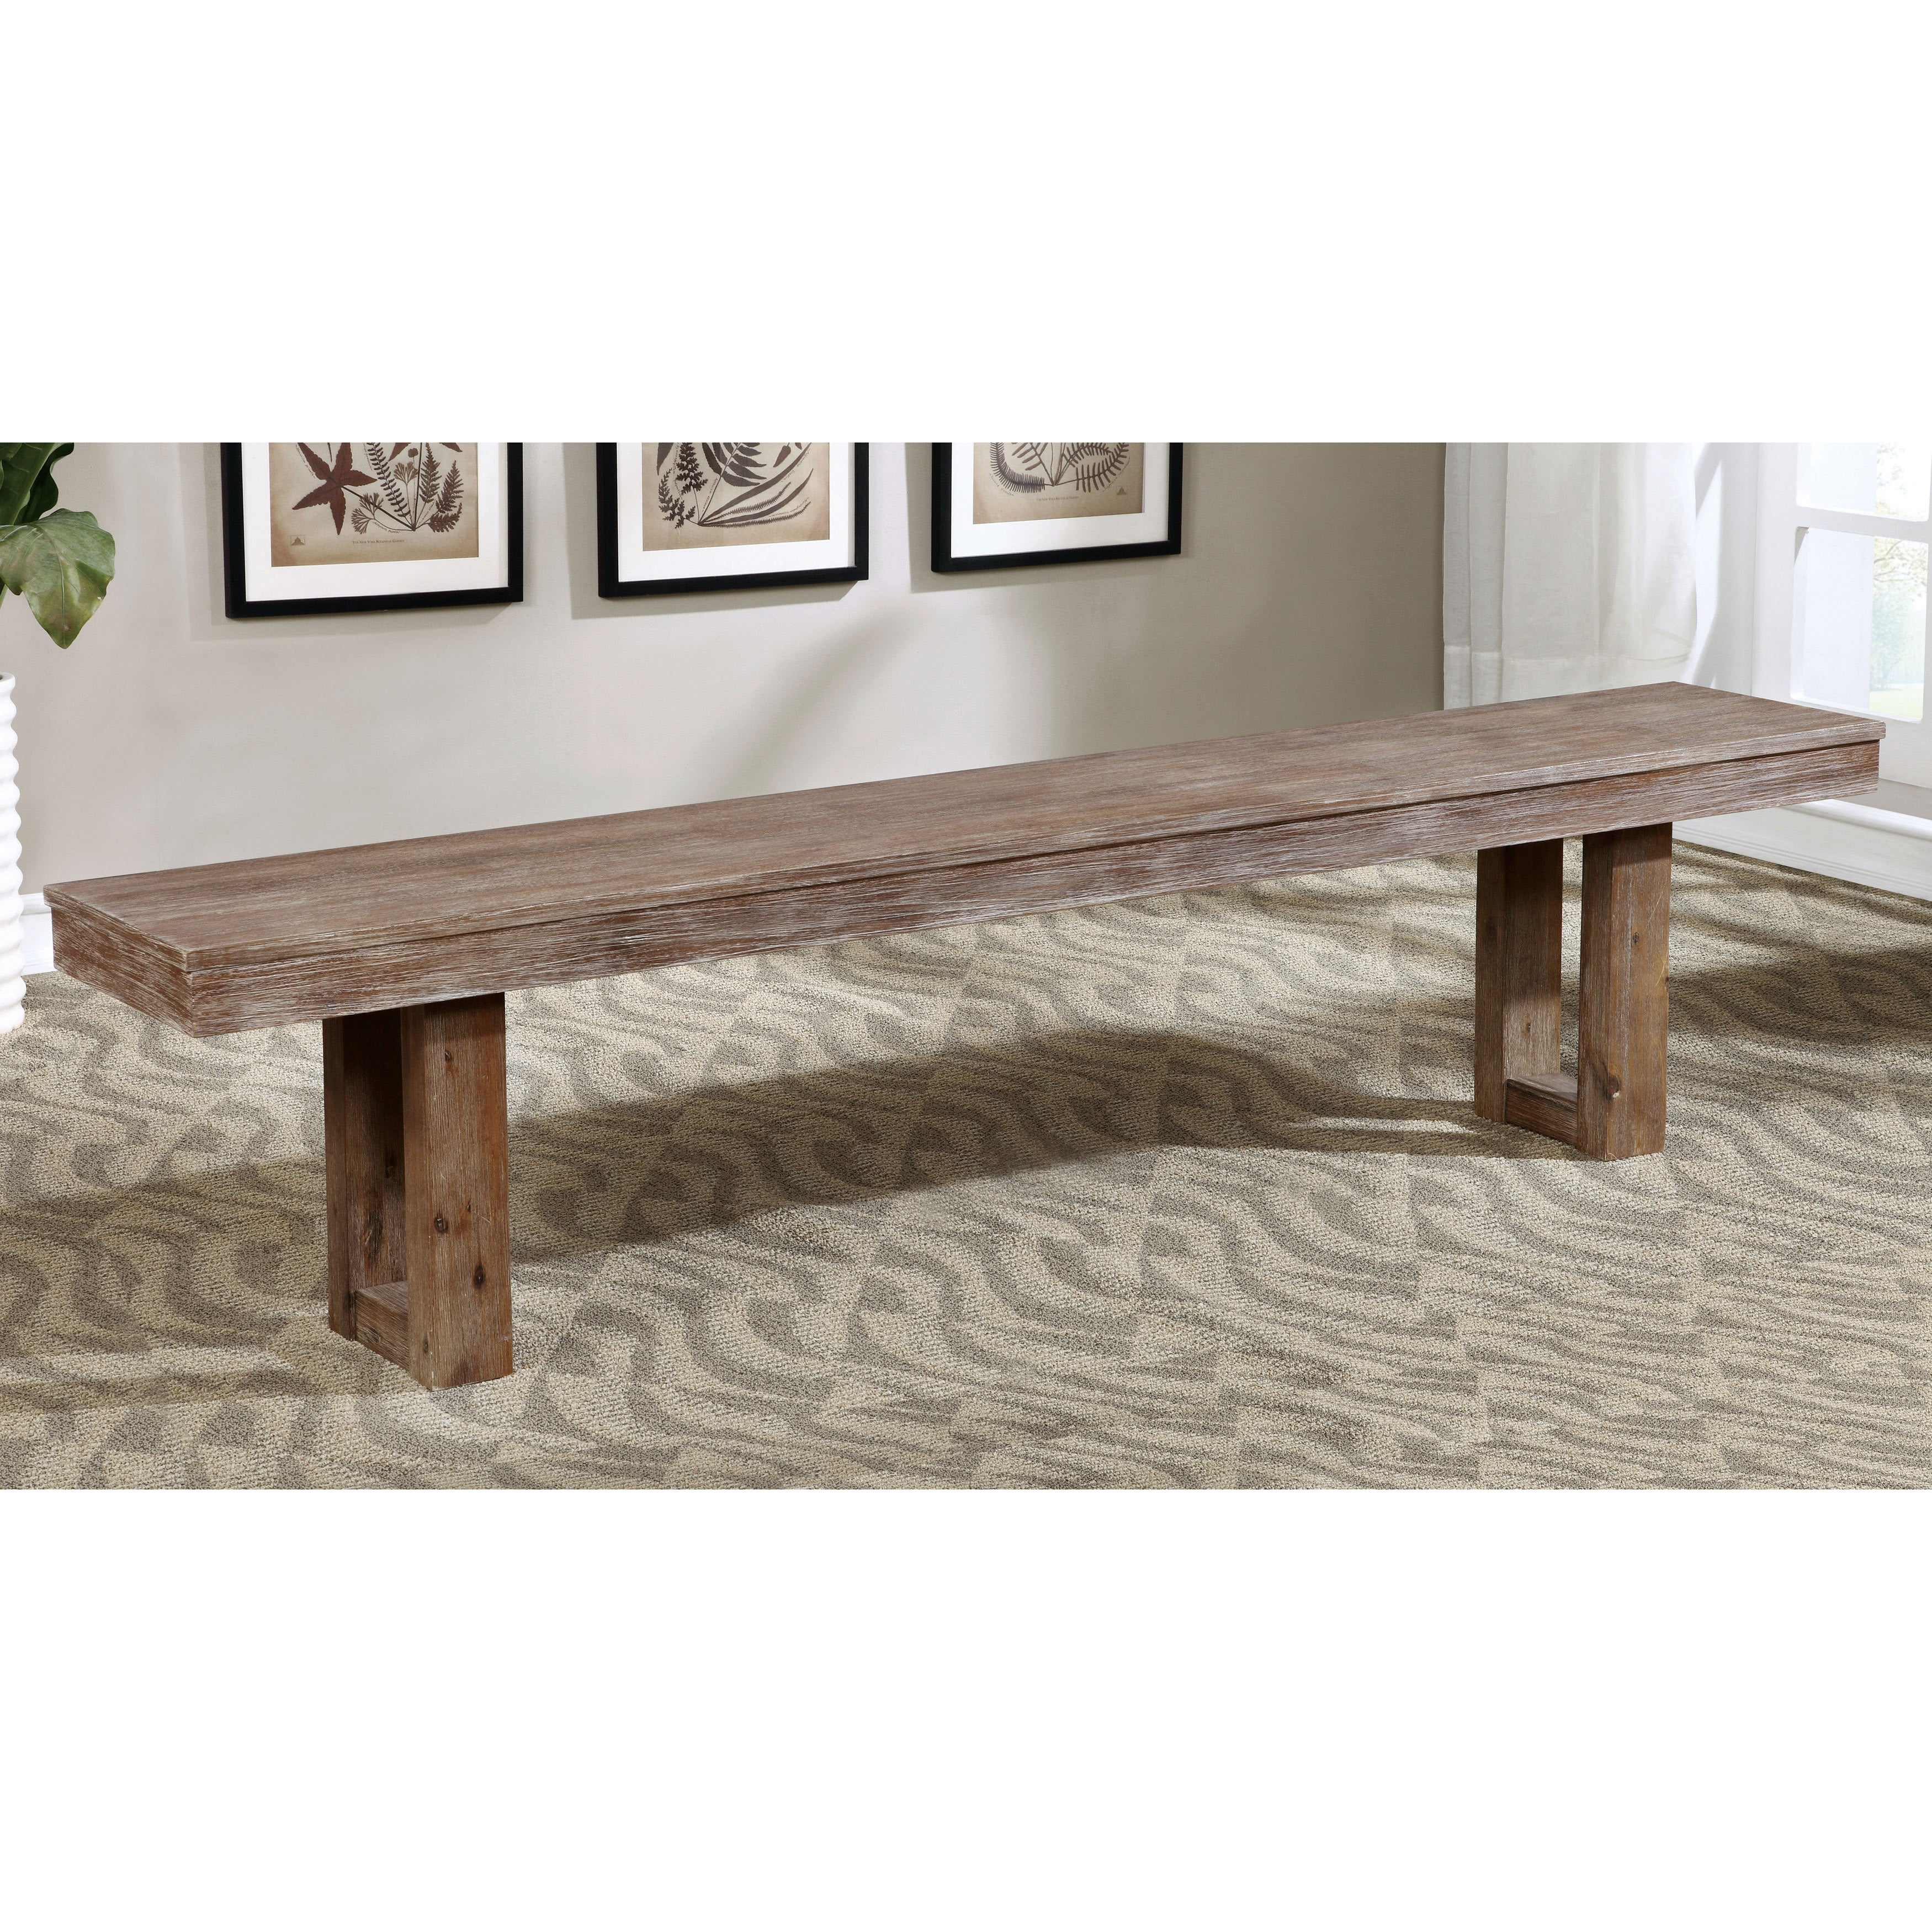 Furniture of America Treville Country Farmhouse Natural T...